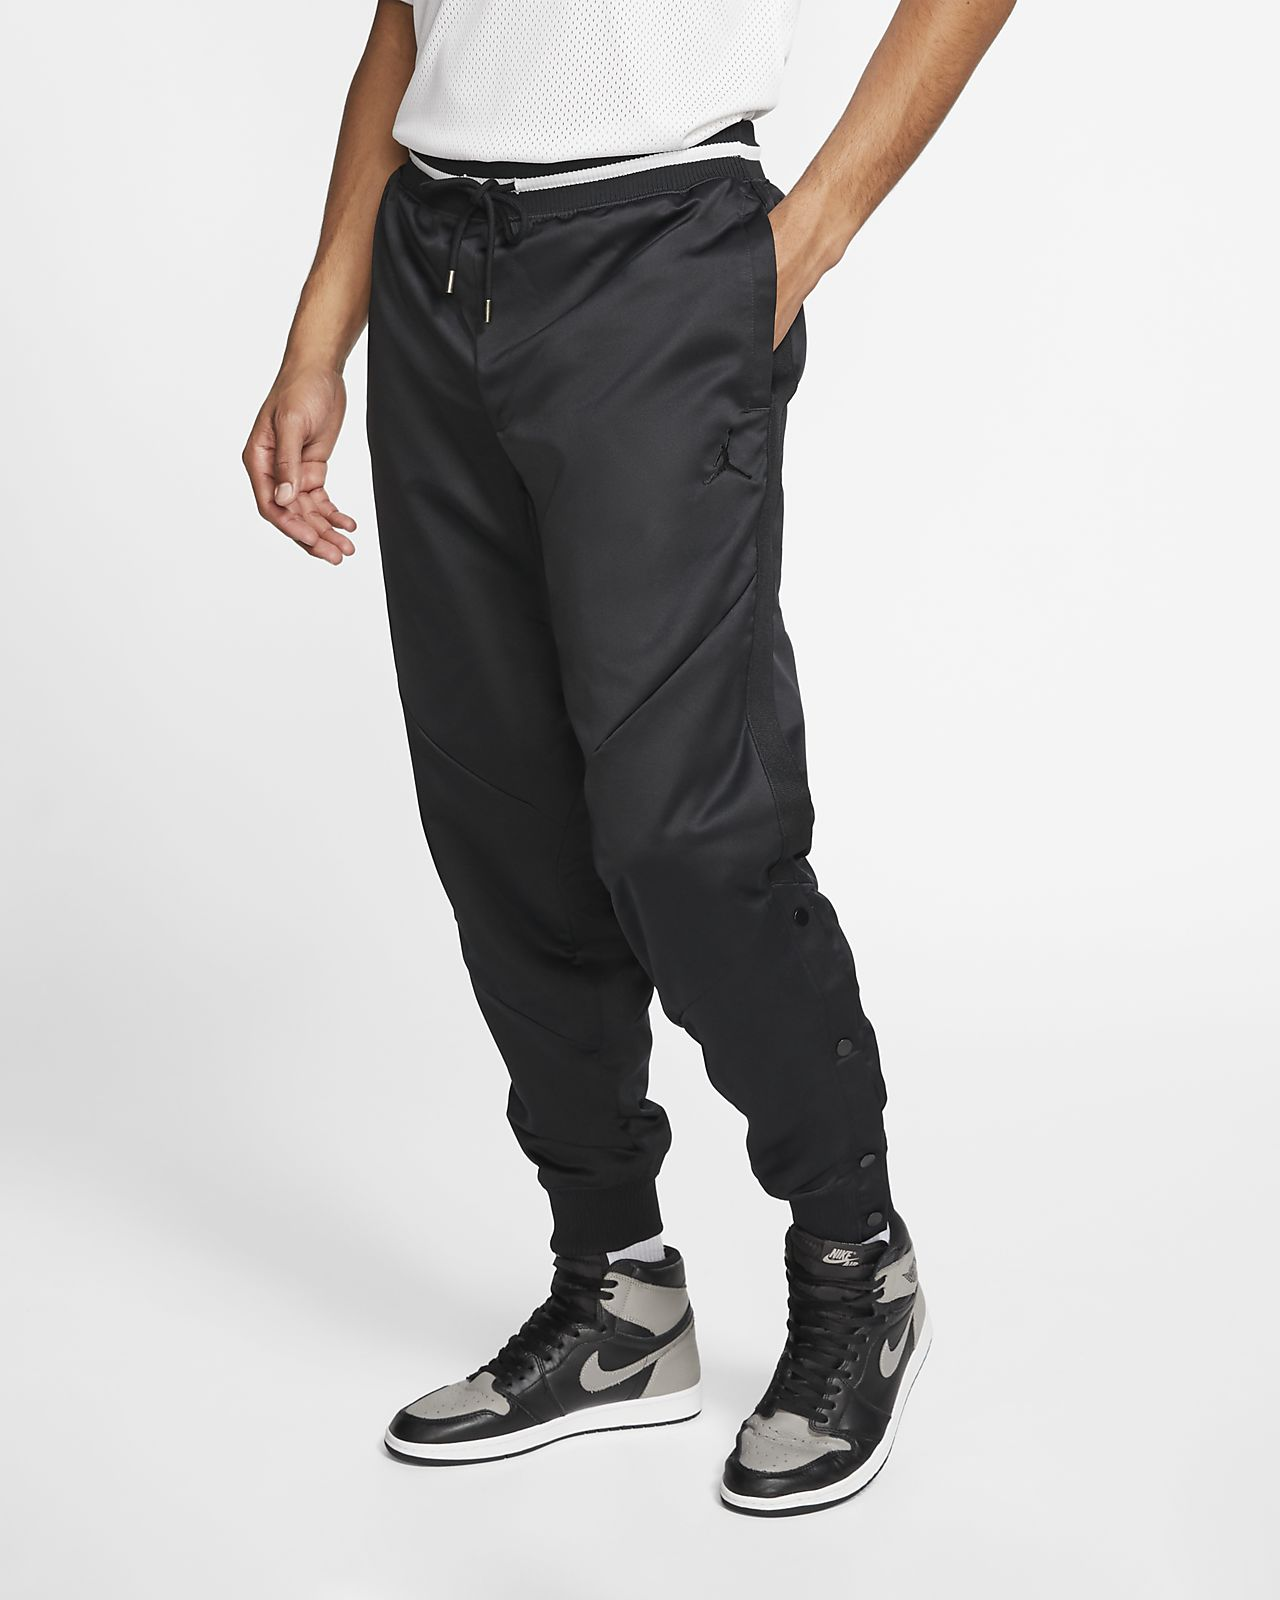 Jordan DNA Men's Tearaway Trousers